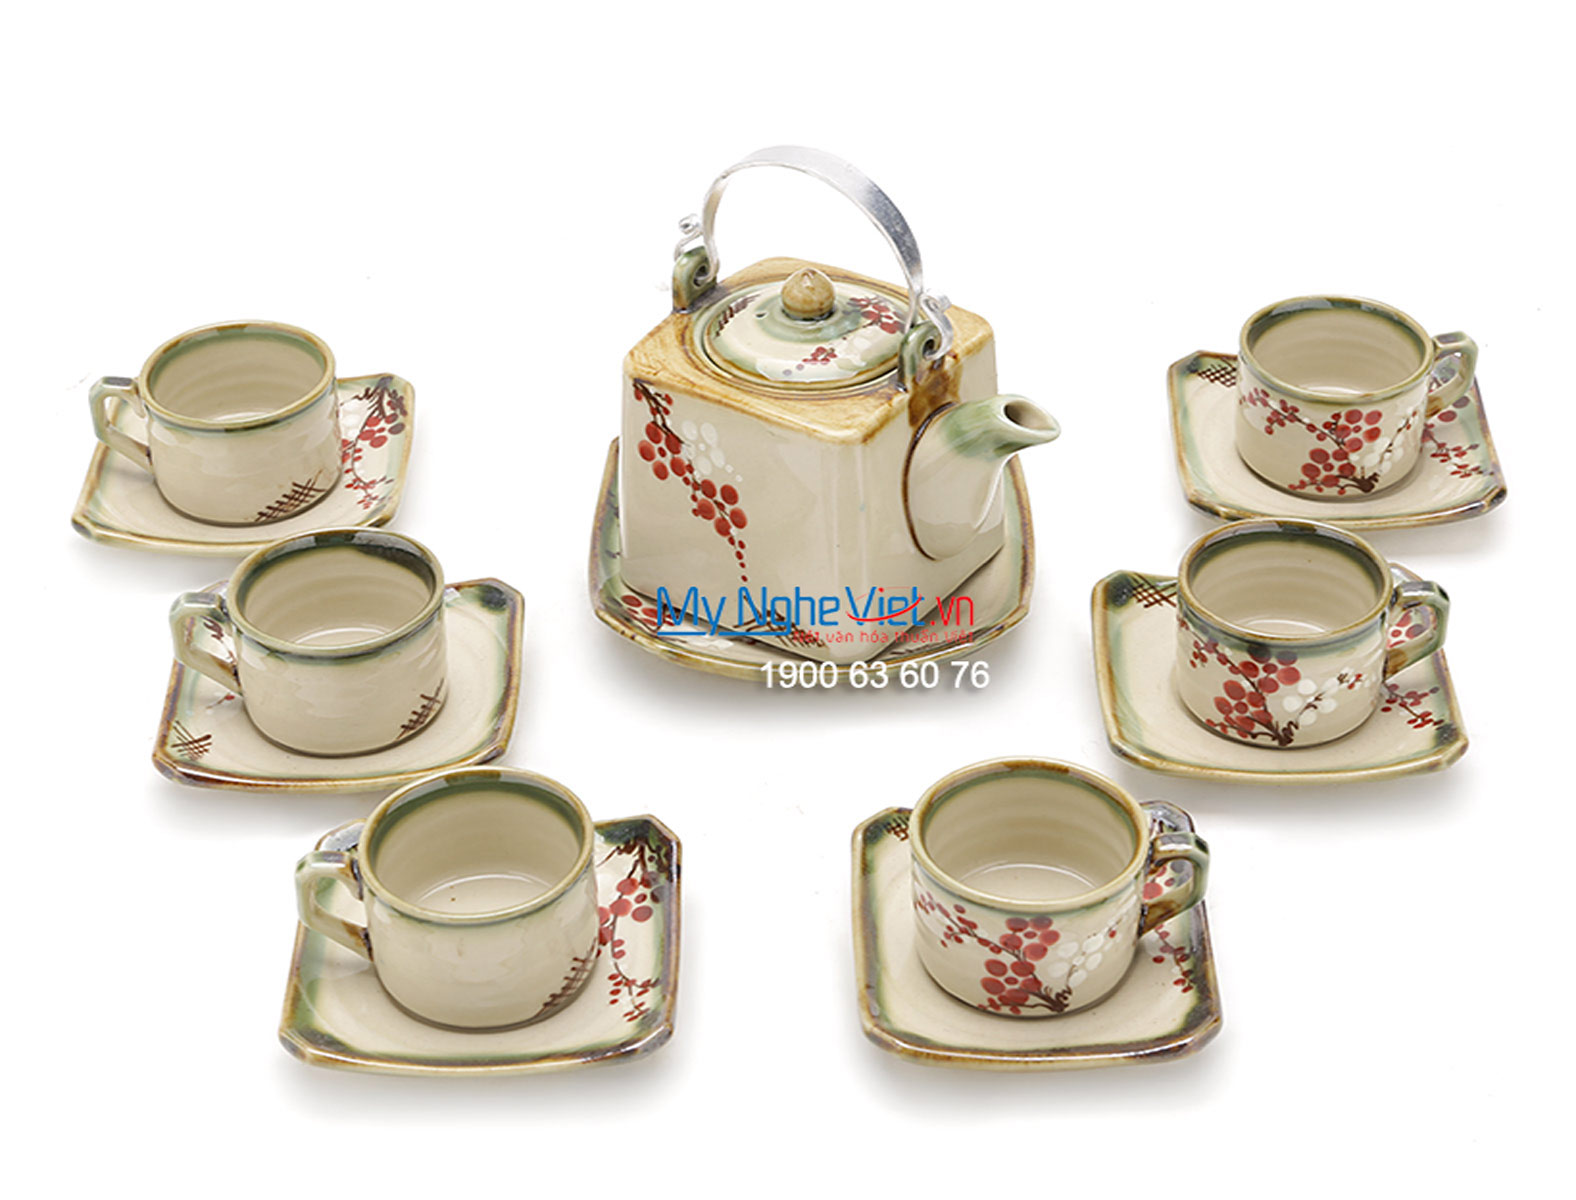 Bat Trang Tea Set with Glossy Square Glaze, Peach Blossom Pattern, and Aluminium Strap MNV-BT256